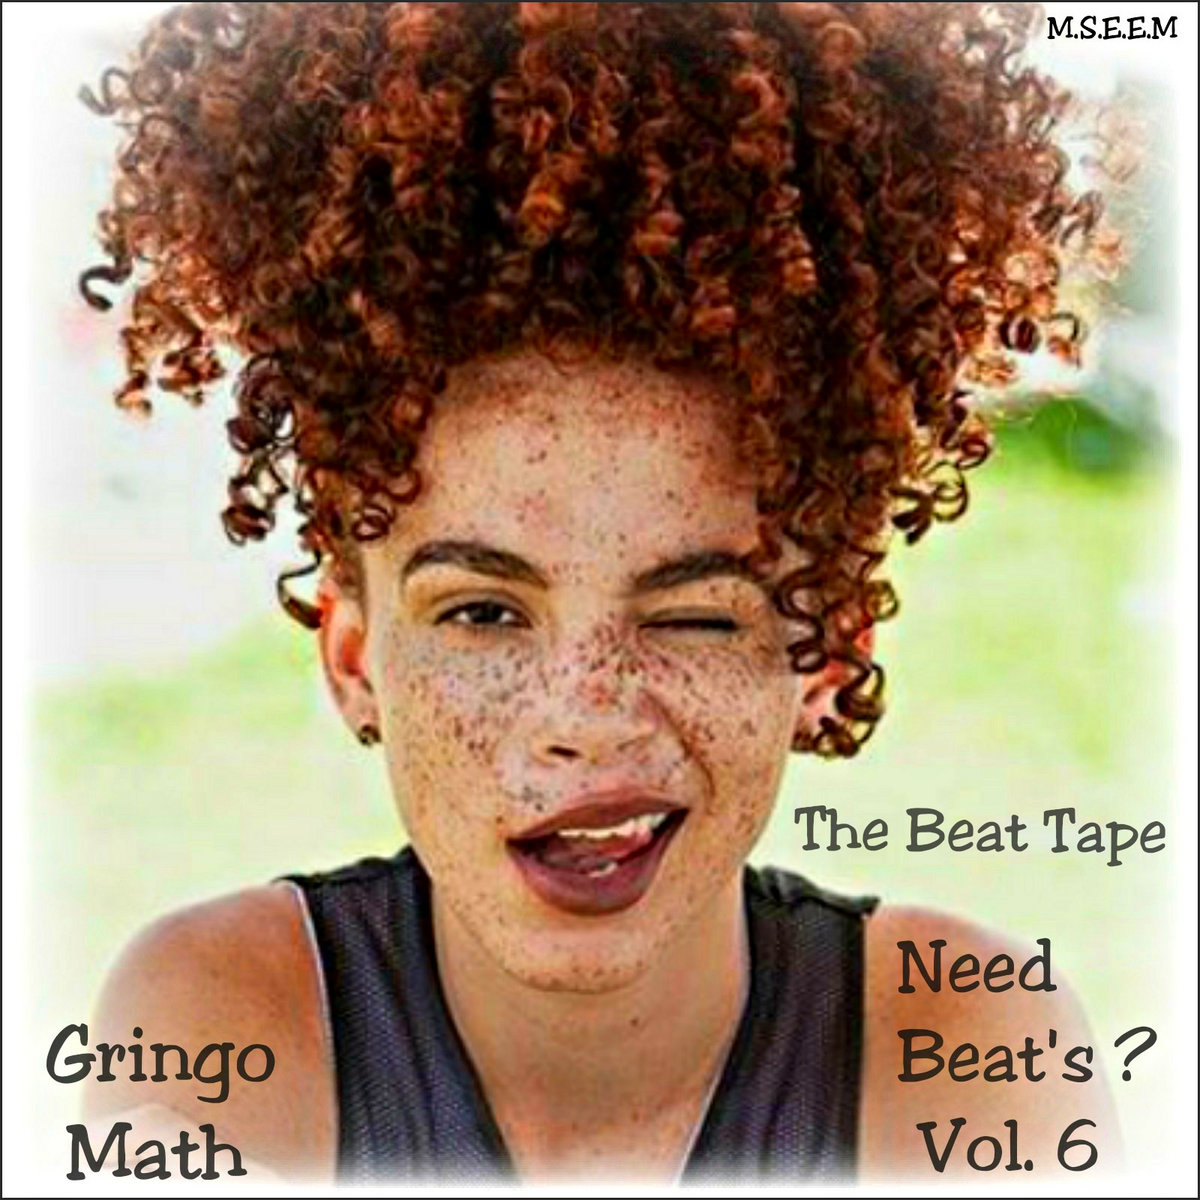 Need Beats Vol 6 Co Produced By Indiana Johnz Gringo Math Of